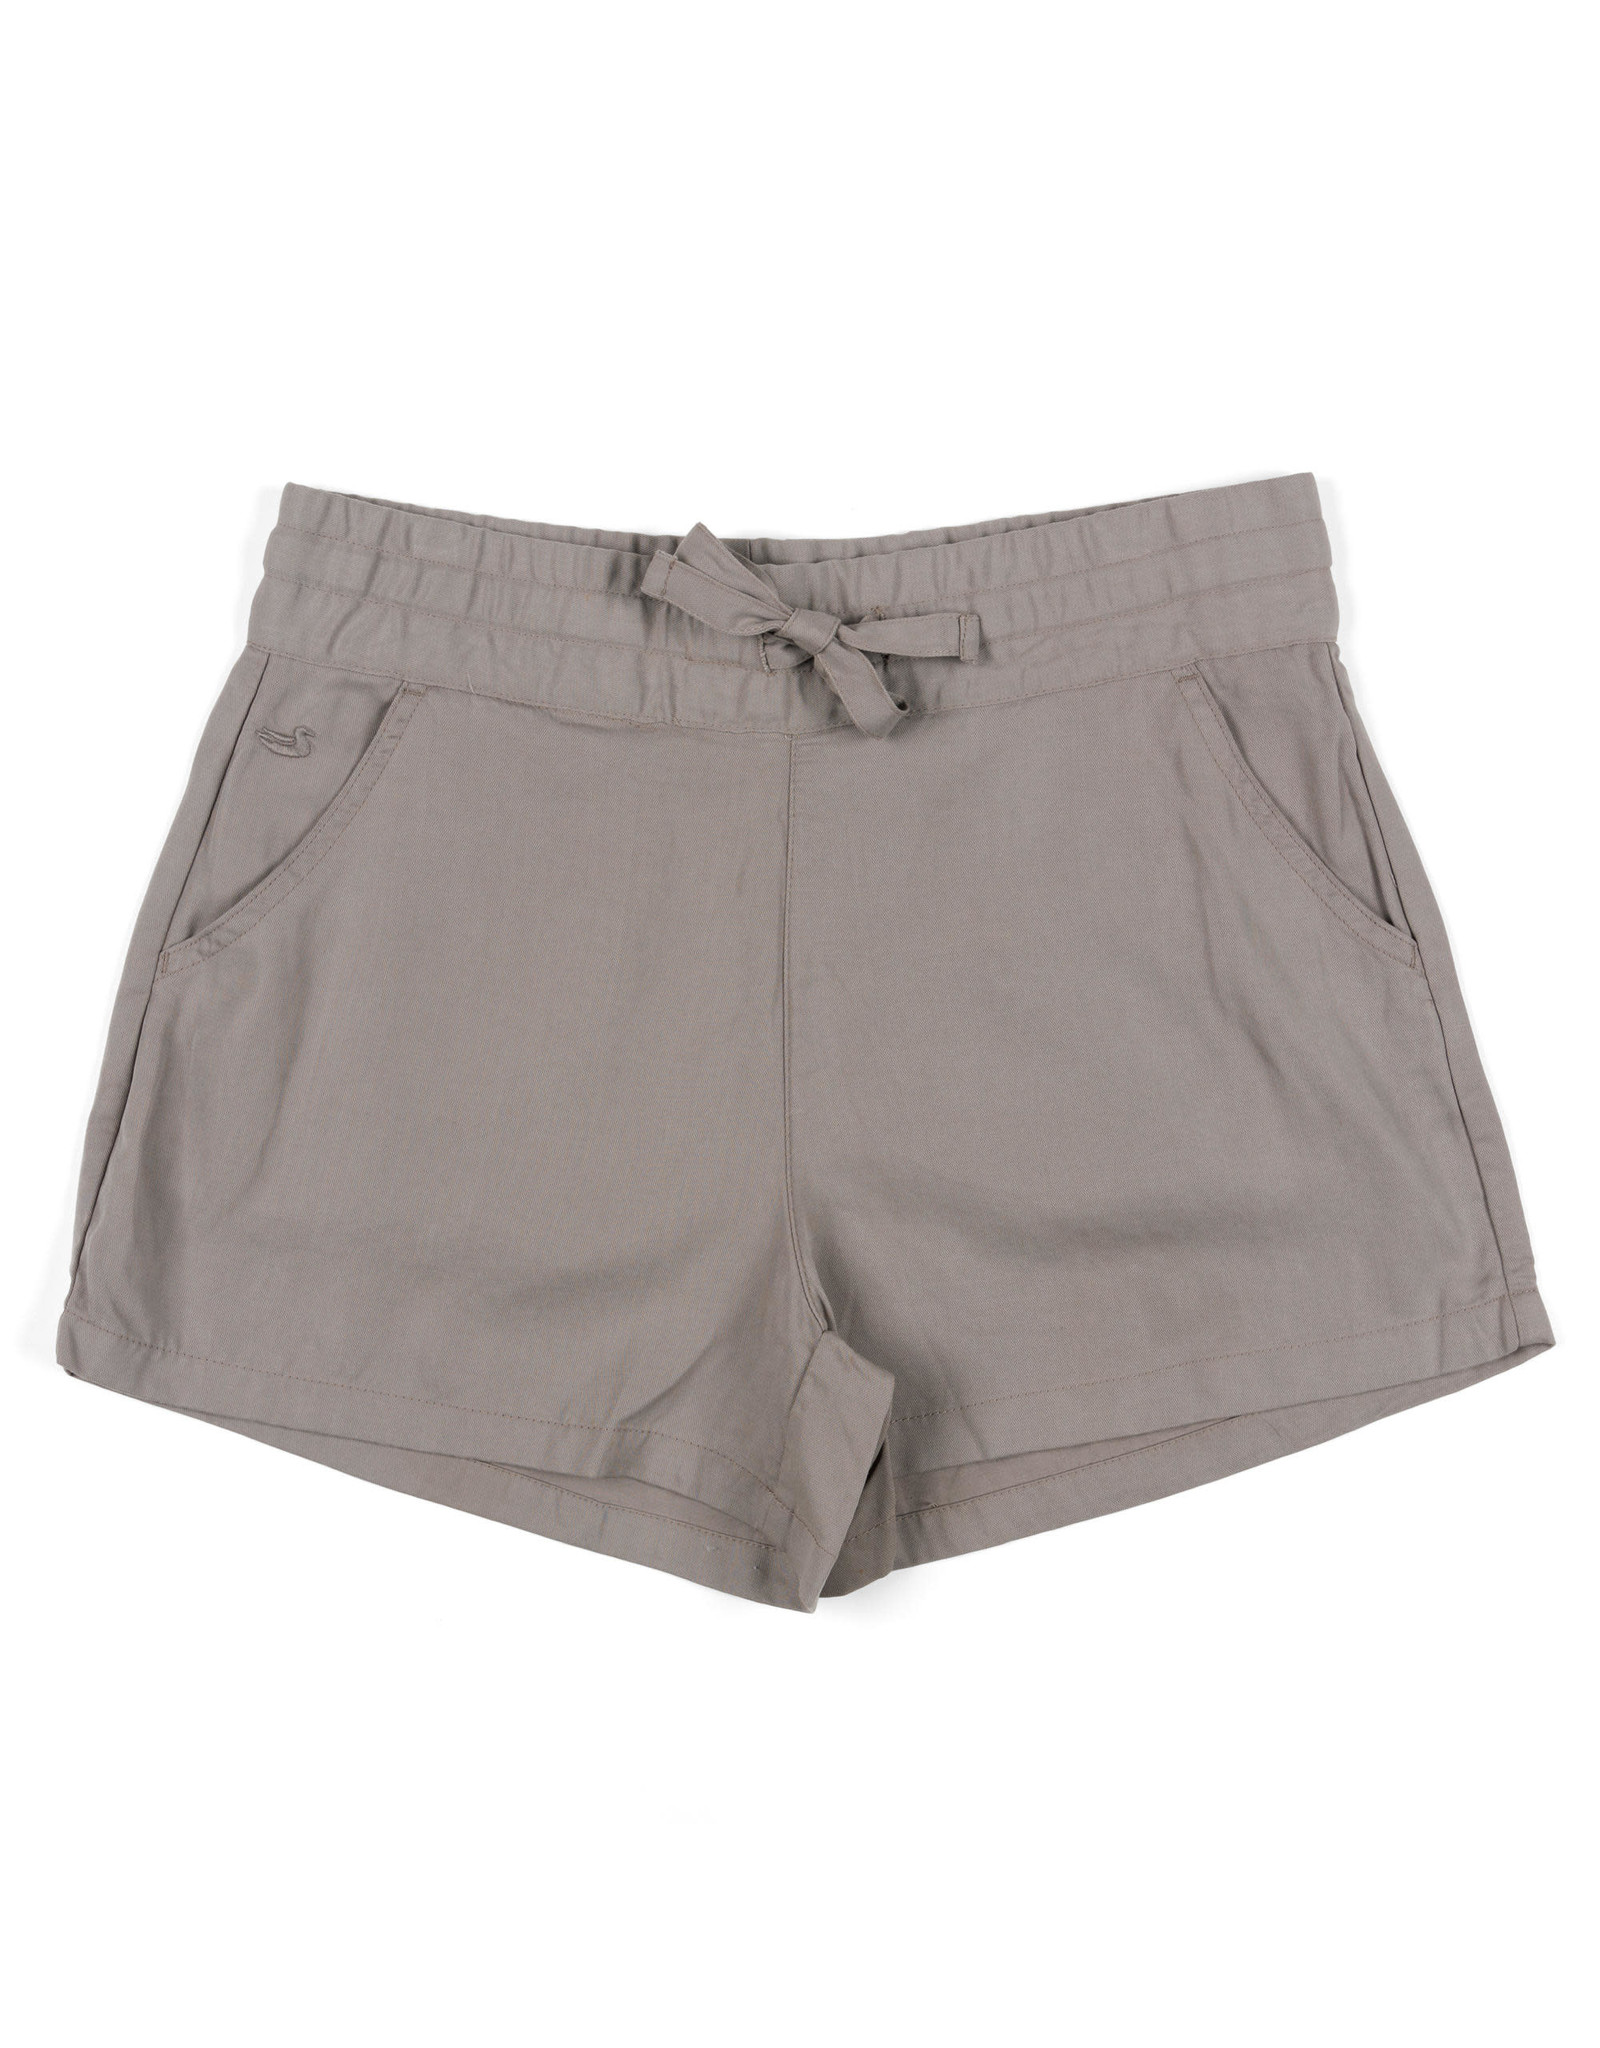 Southern Marsh Southern Marsh Rachel Relaxed Shorts